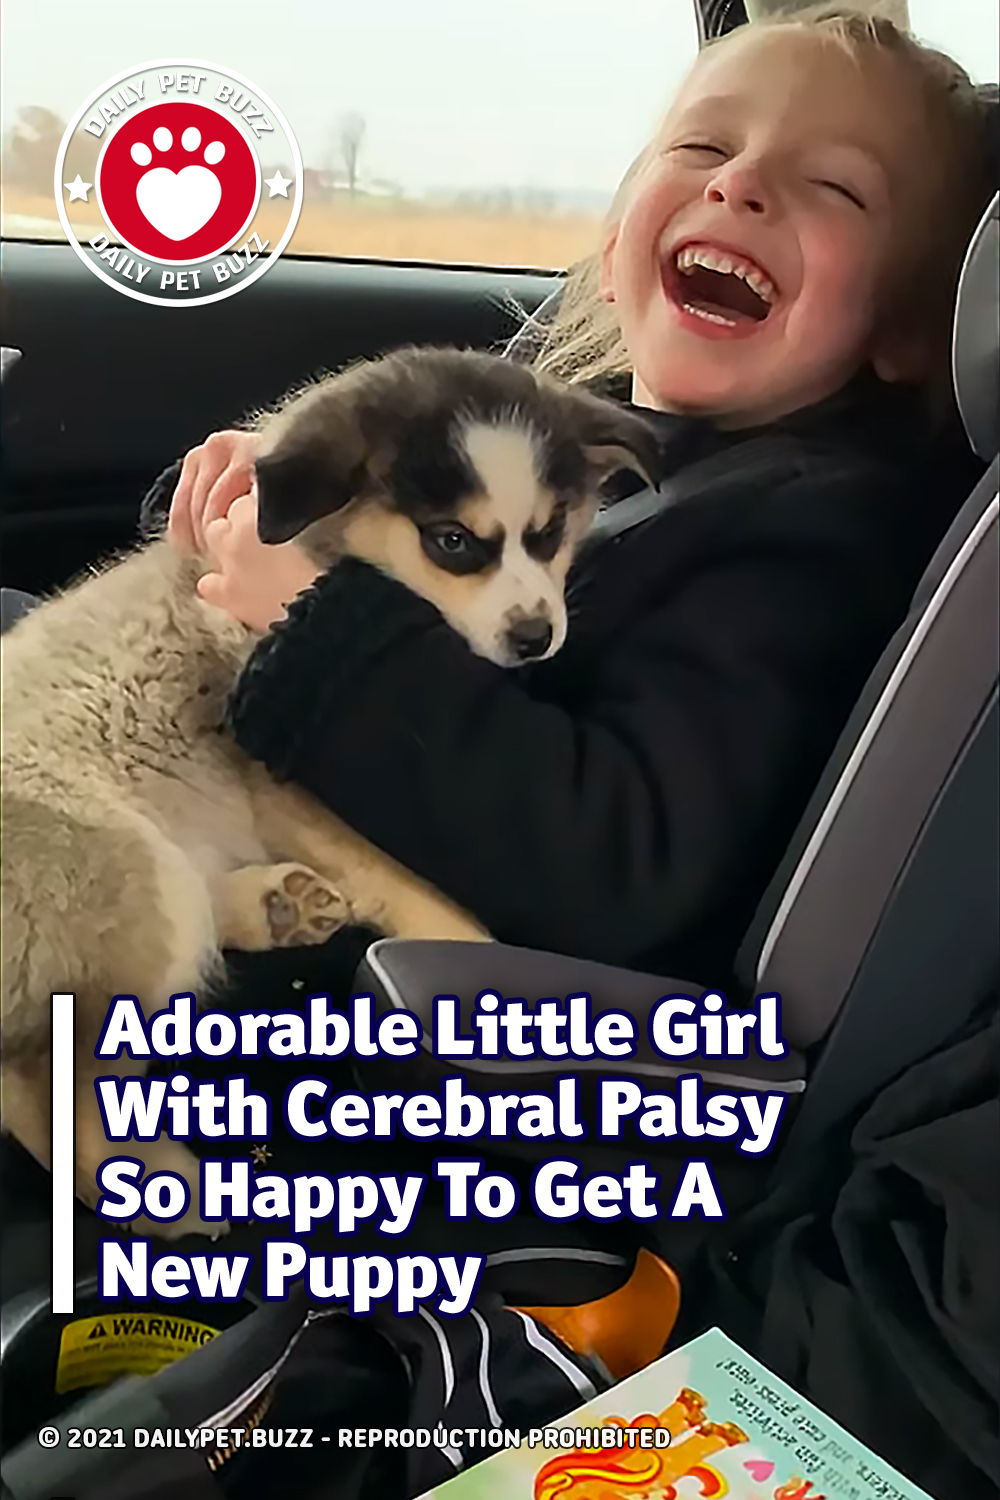 Adorable Little Girl With Cerebral Palsy So Happy To Get A New Puppy